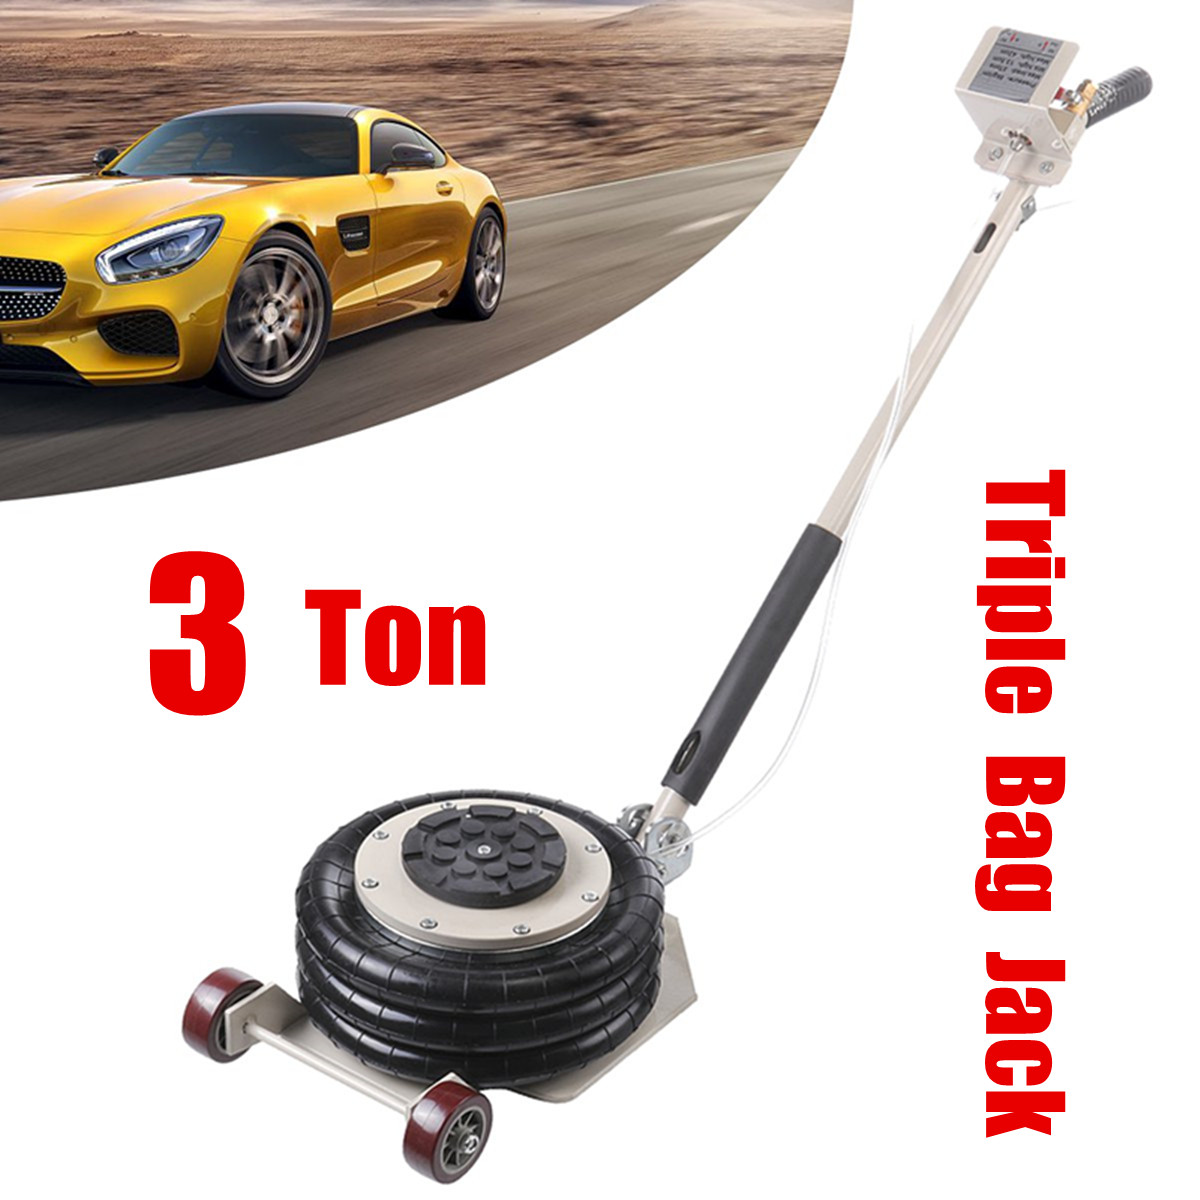 3T Pneumatic Car Jack Portable Lift Triple Stage Bag Air Go Jack Frame Alignment Car Truck Shop Lifting Equipment Tire Change